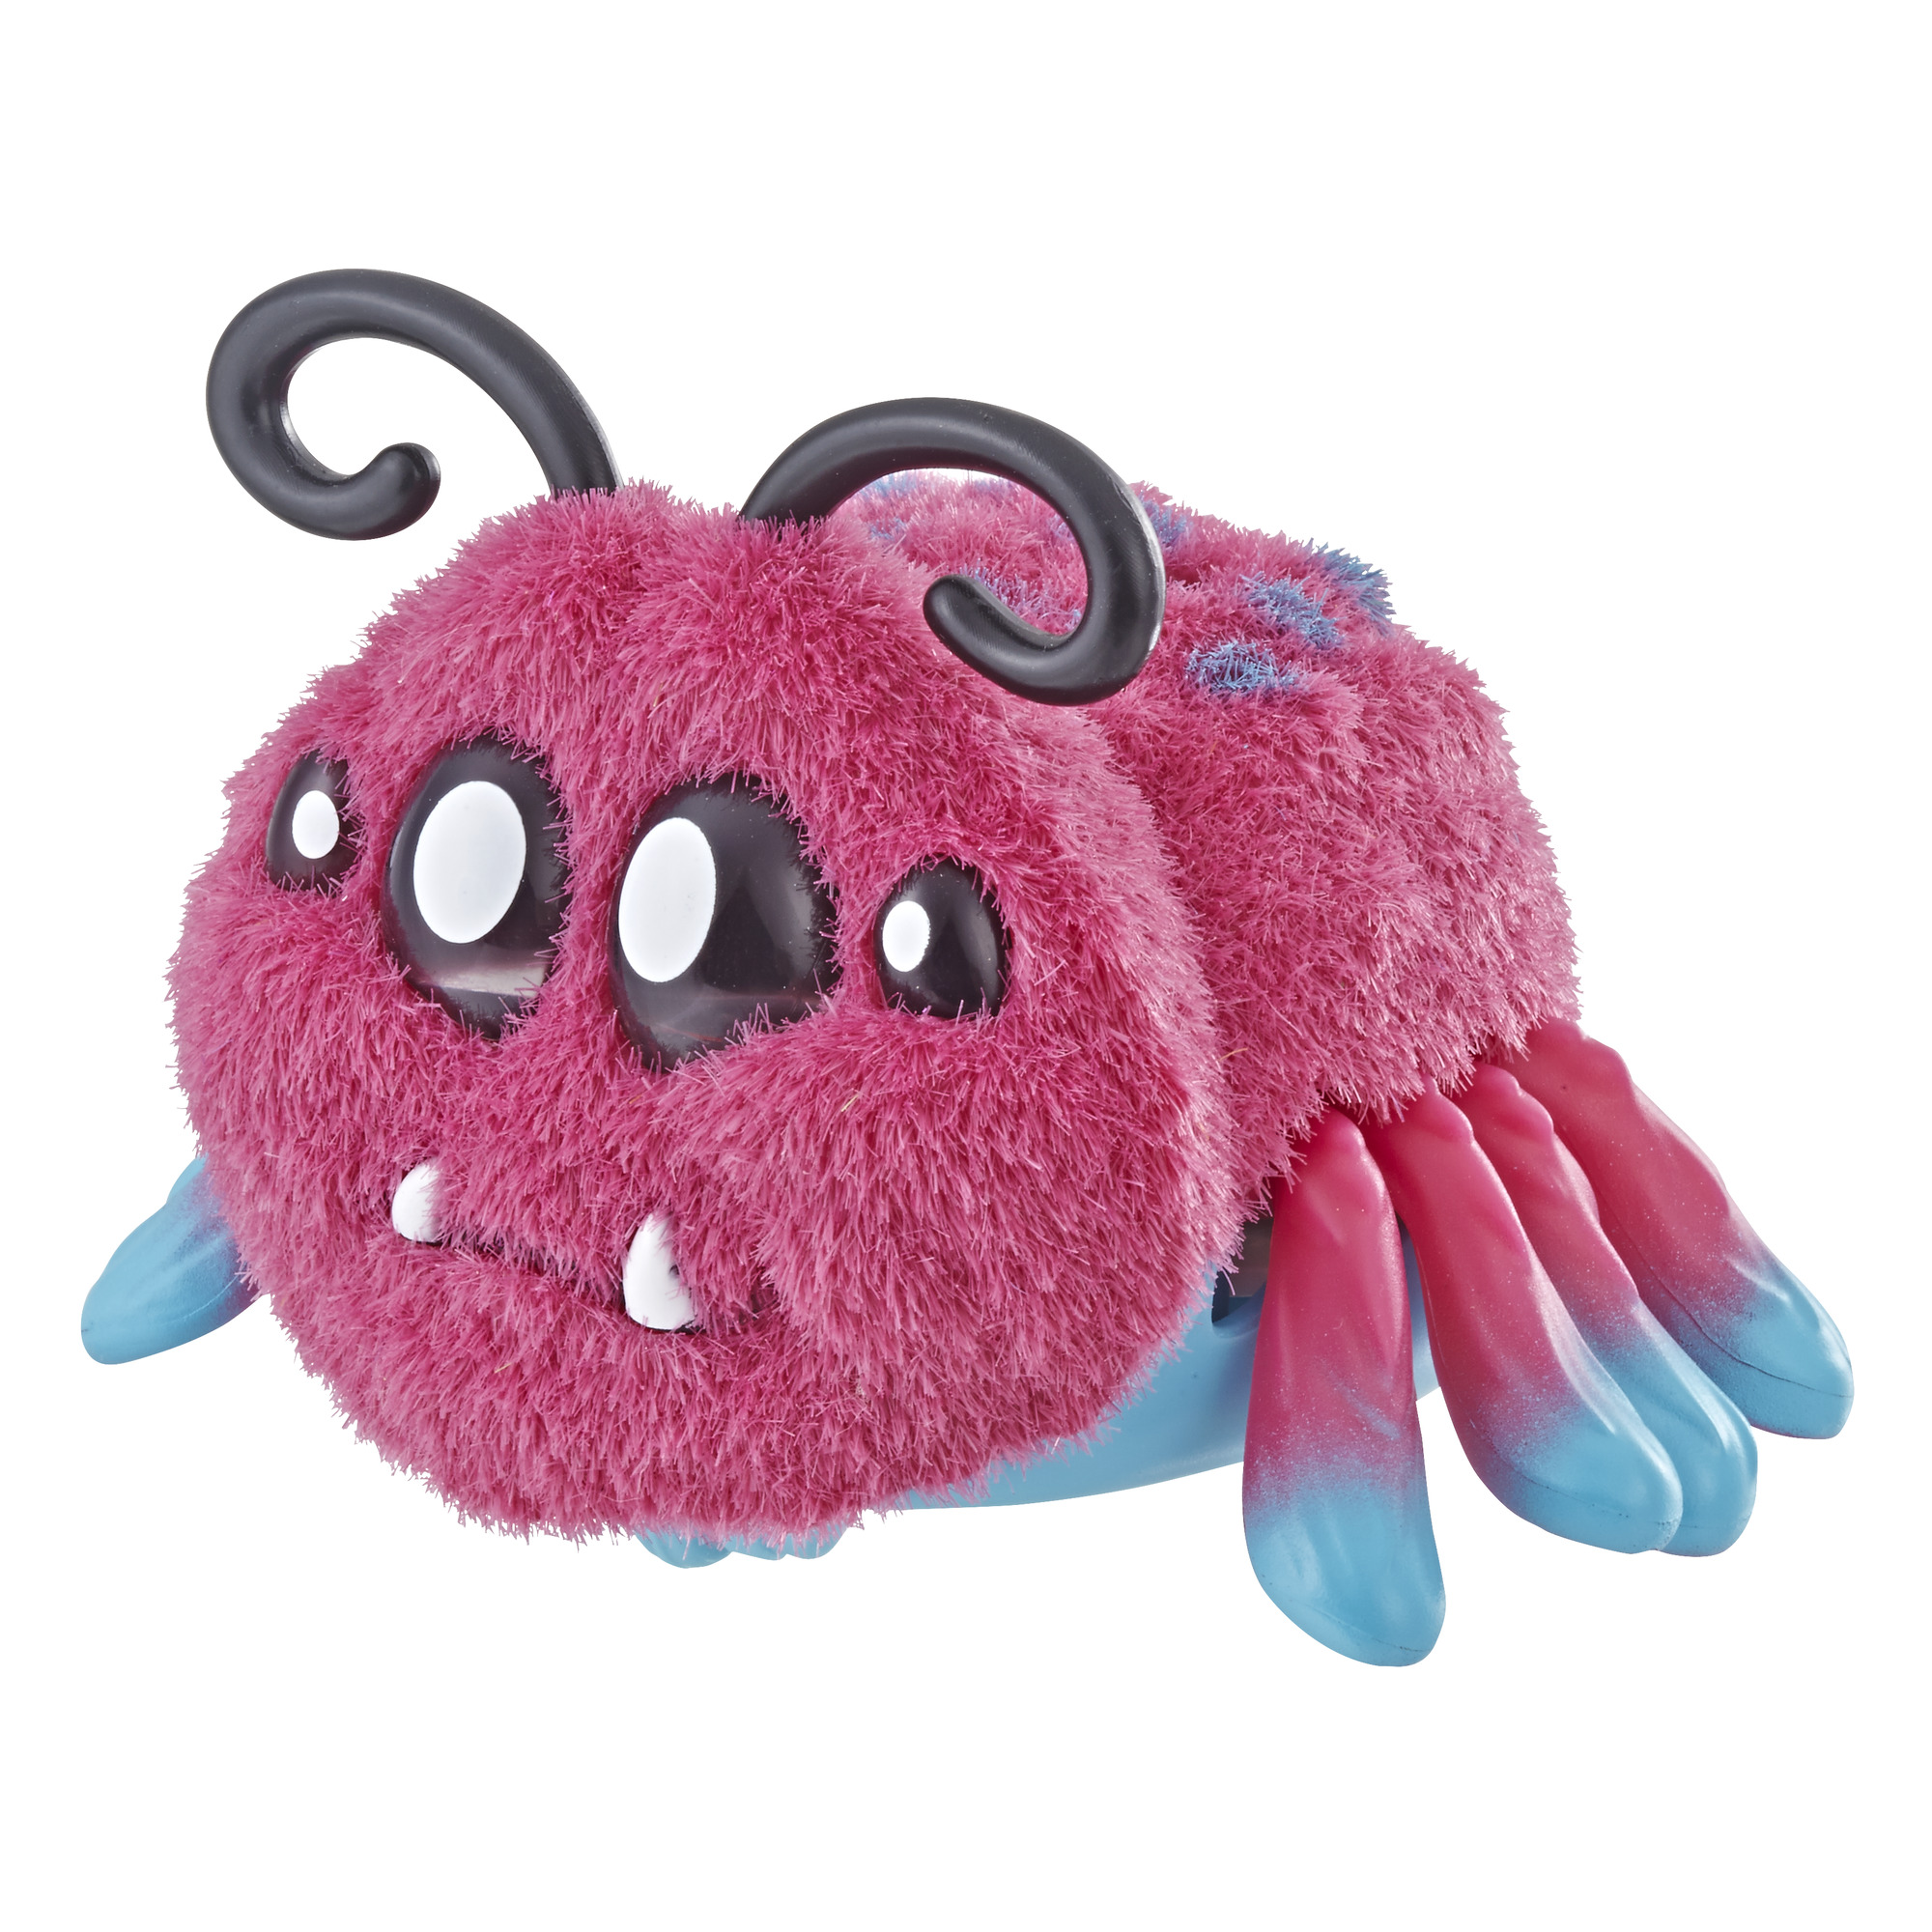 Yellies! Fuzzbo; Voice-Activated Spider Pet; Ages 5 and up